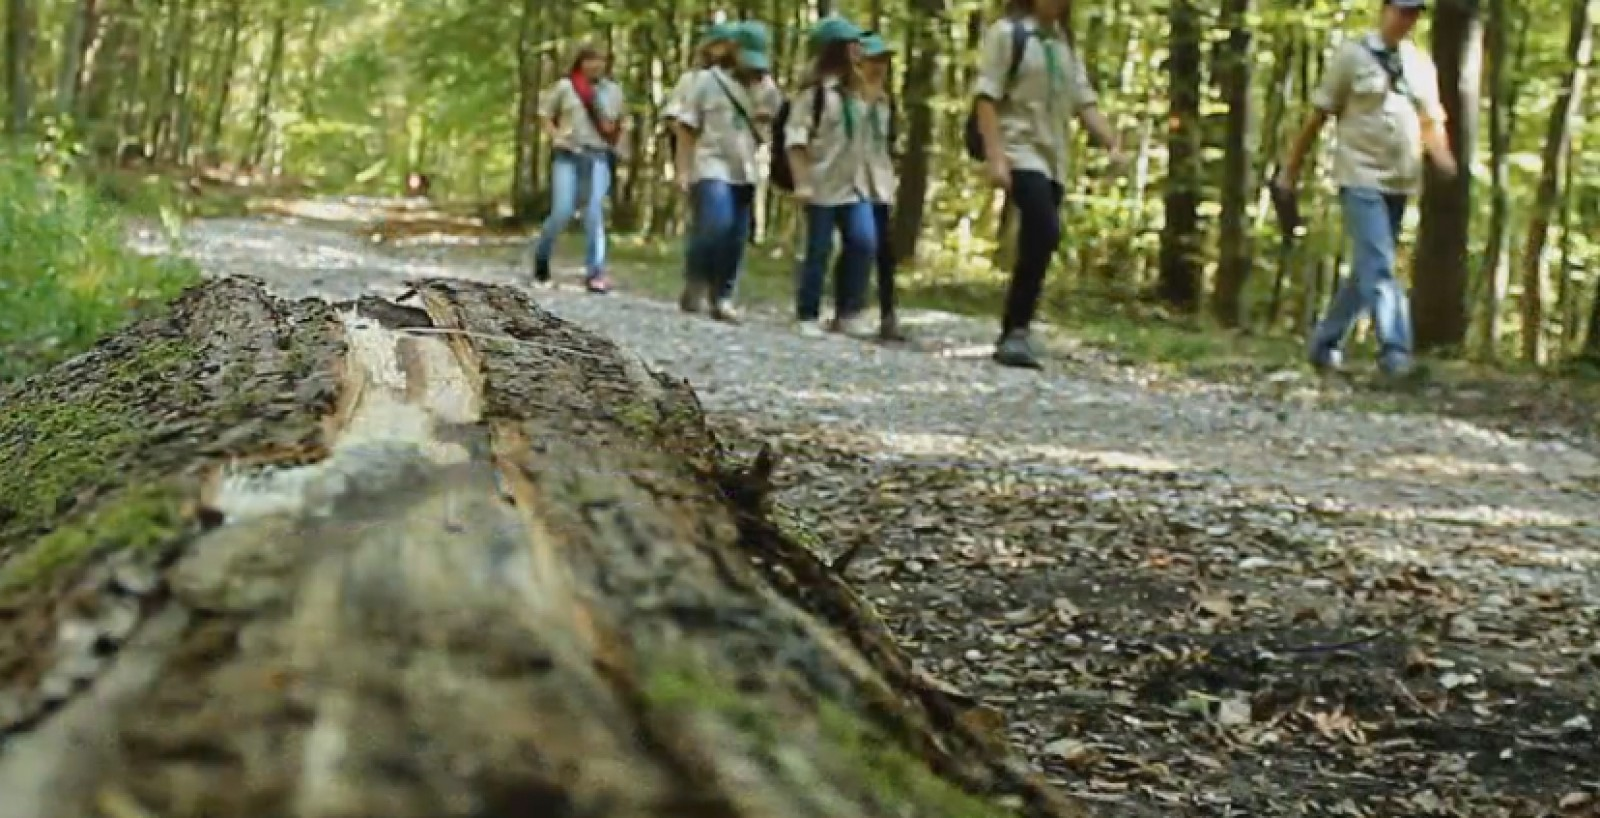 Hiking and scouts